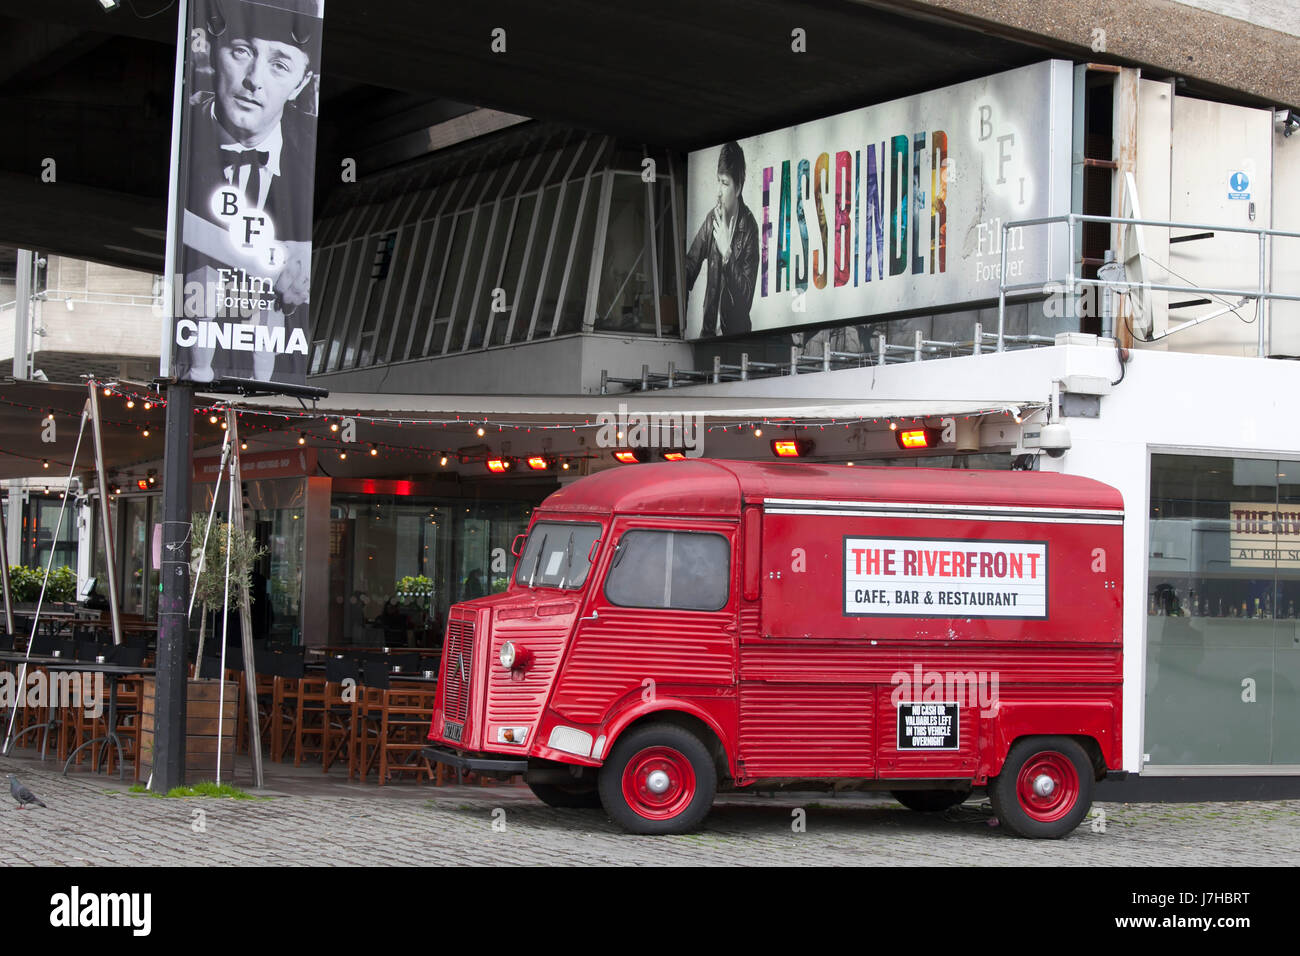 LONDON, ENGLAND - March 12, 2017 Riverfront Bar at the British Film Institute - BFI, South Bank, London, England, - Stock Image